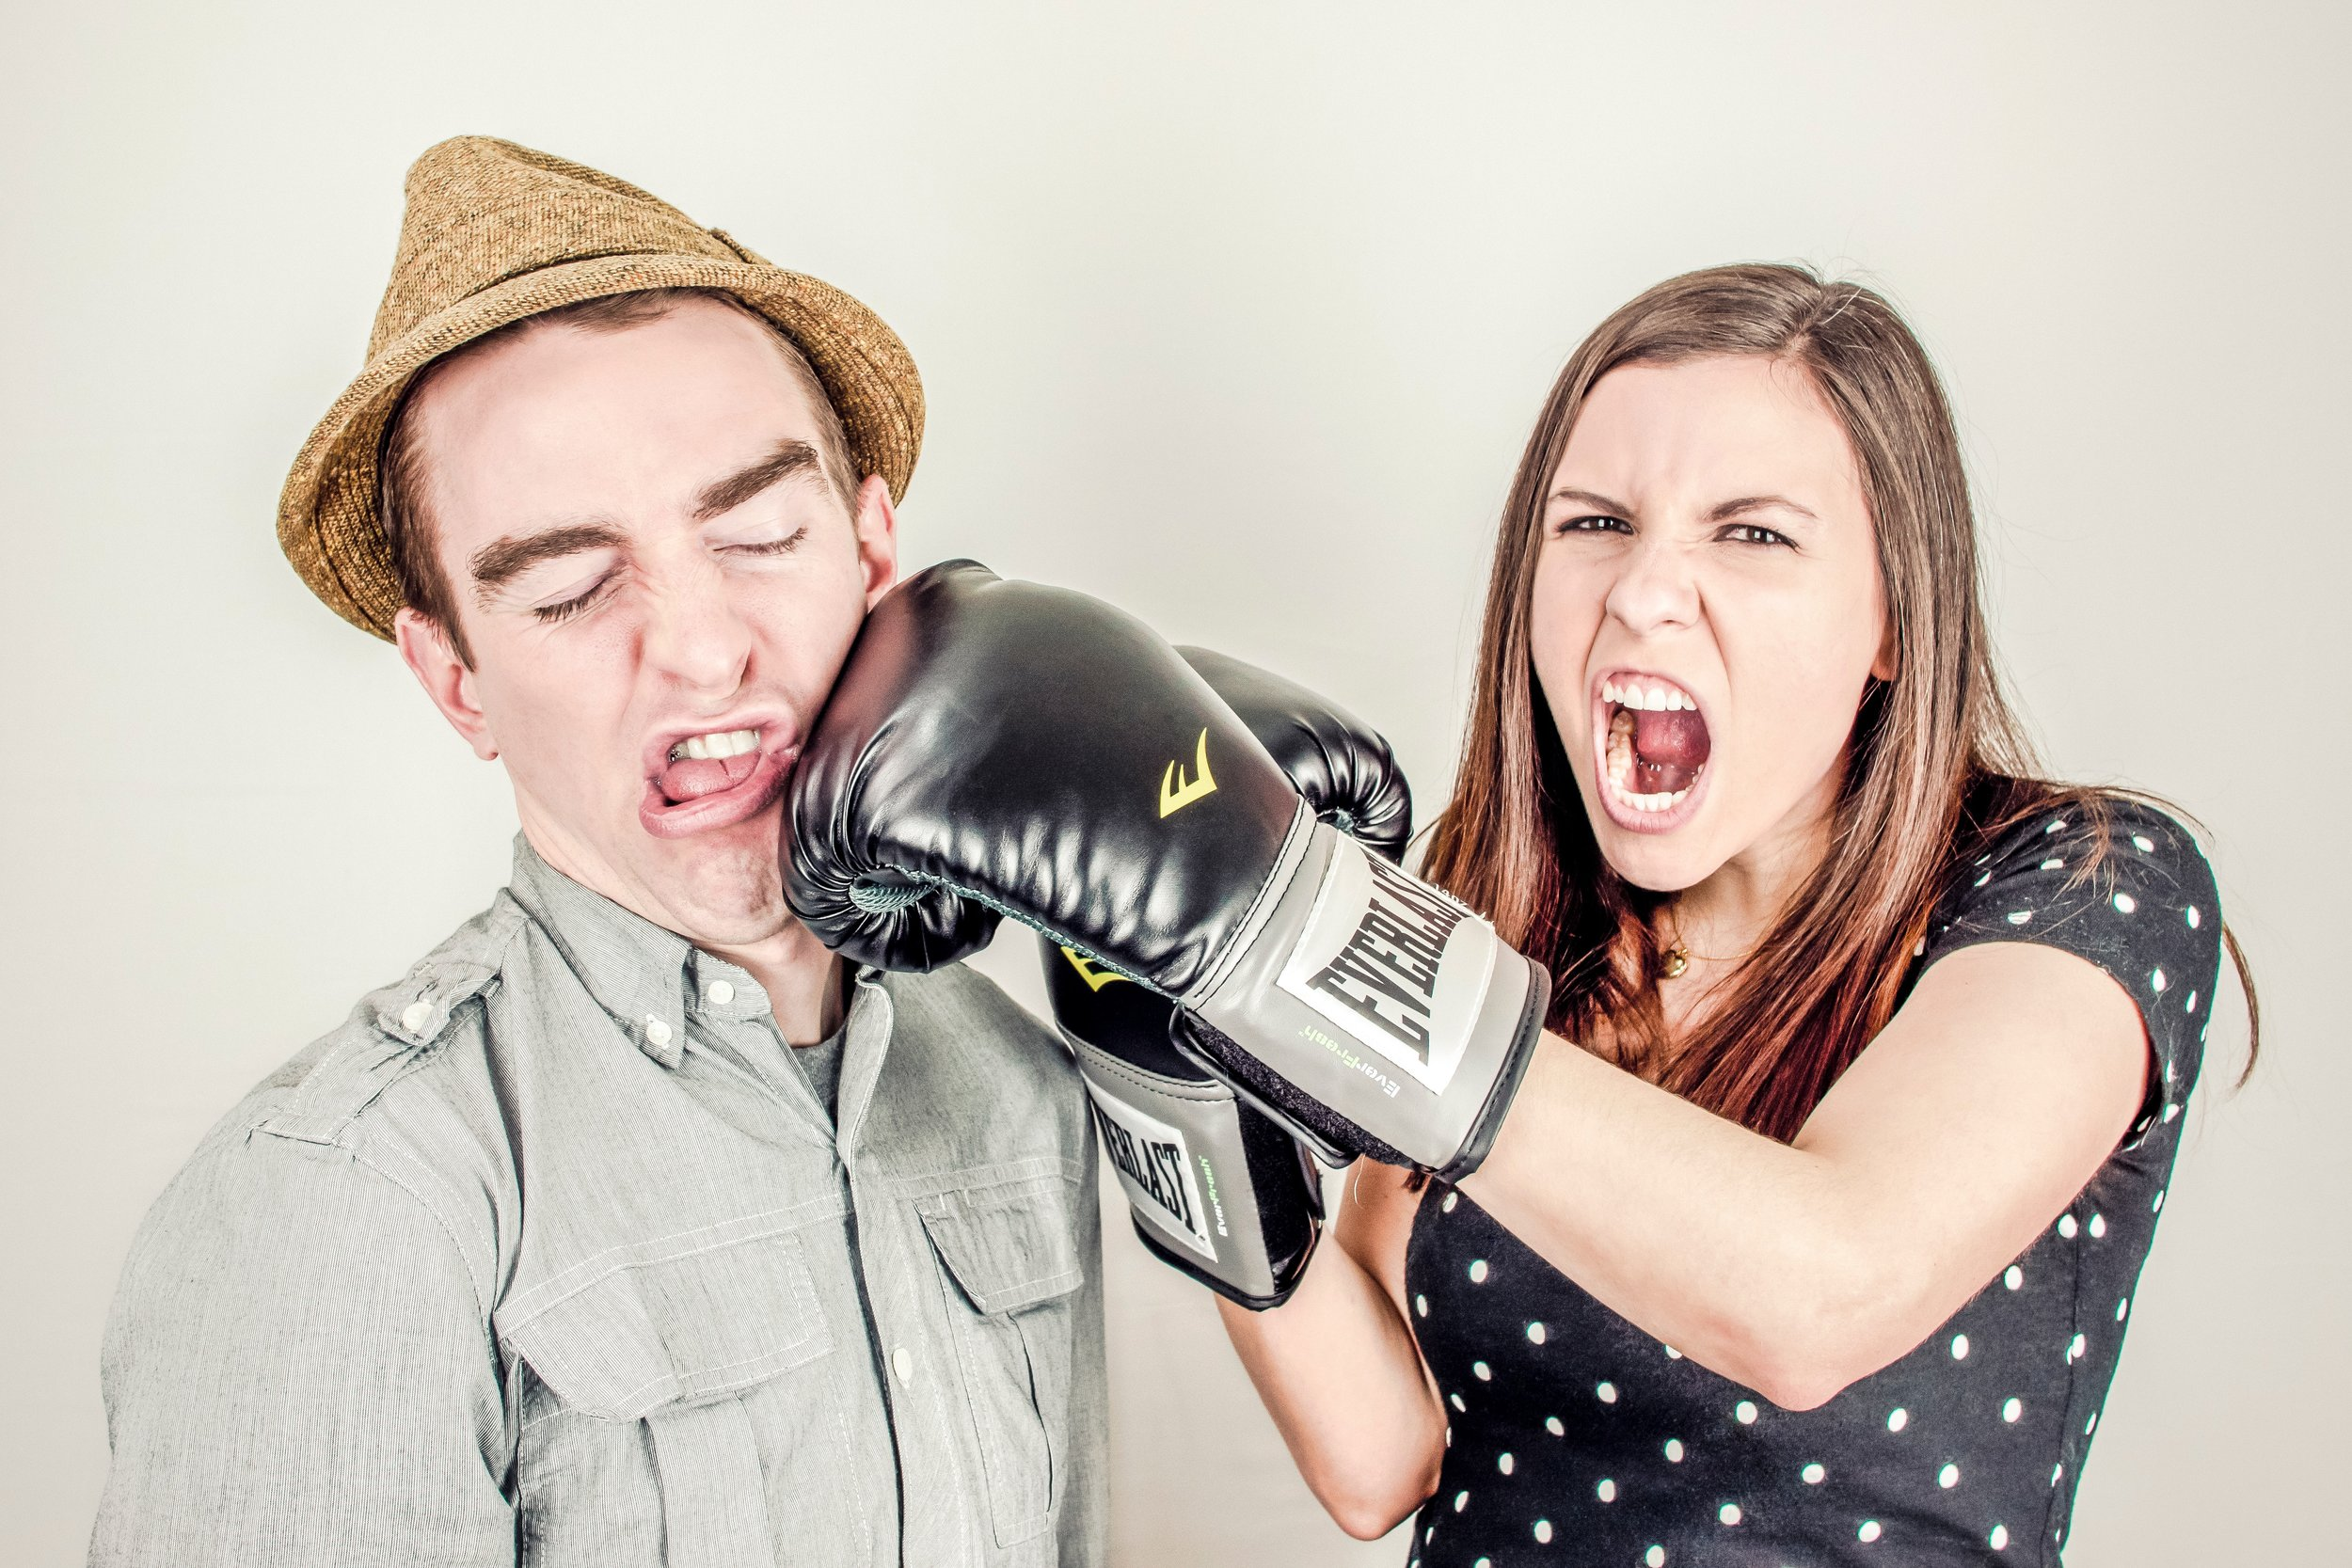 angry-argue-argument-343.jpg